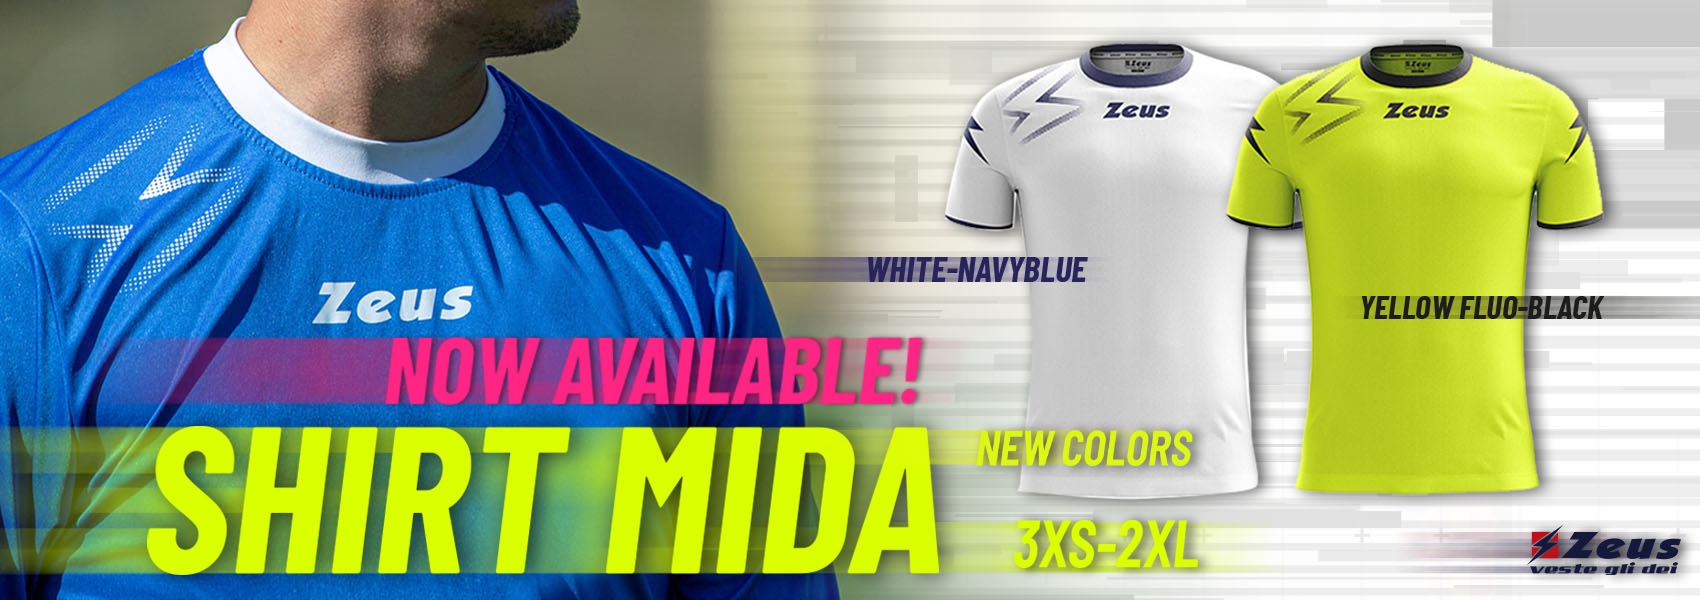 https://www.zeusport.it/public/slide/SHIRT%20MIDA%20YELLOW%20FLUO%20E%20WHITE%20NAVY.jpg